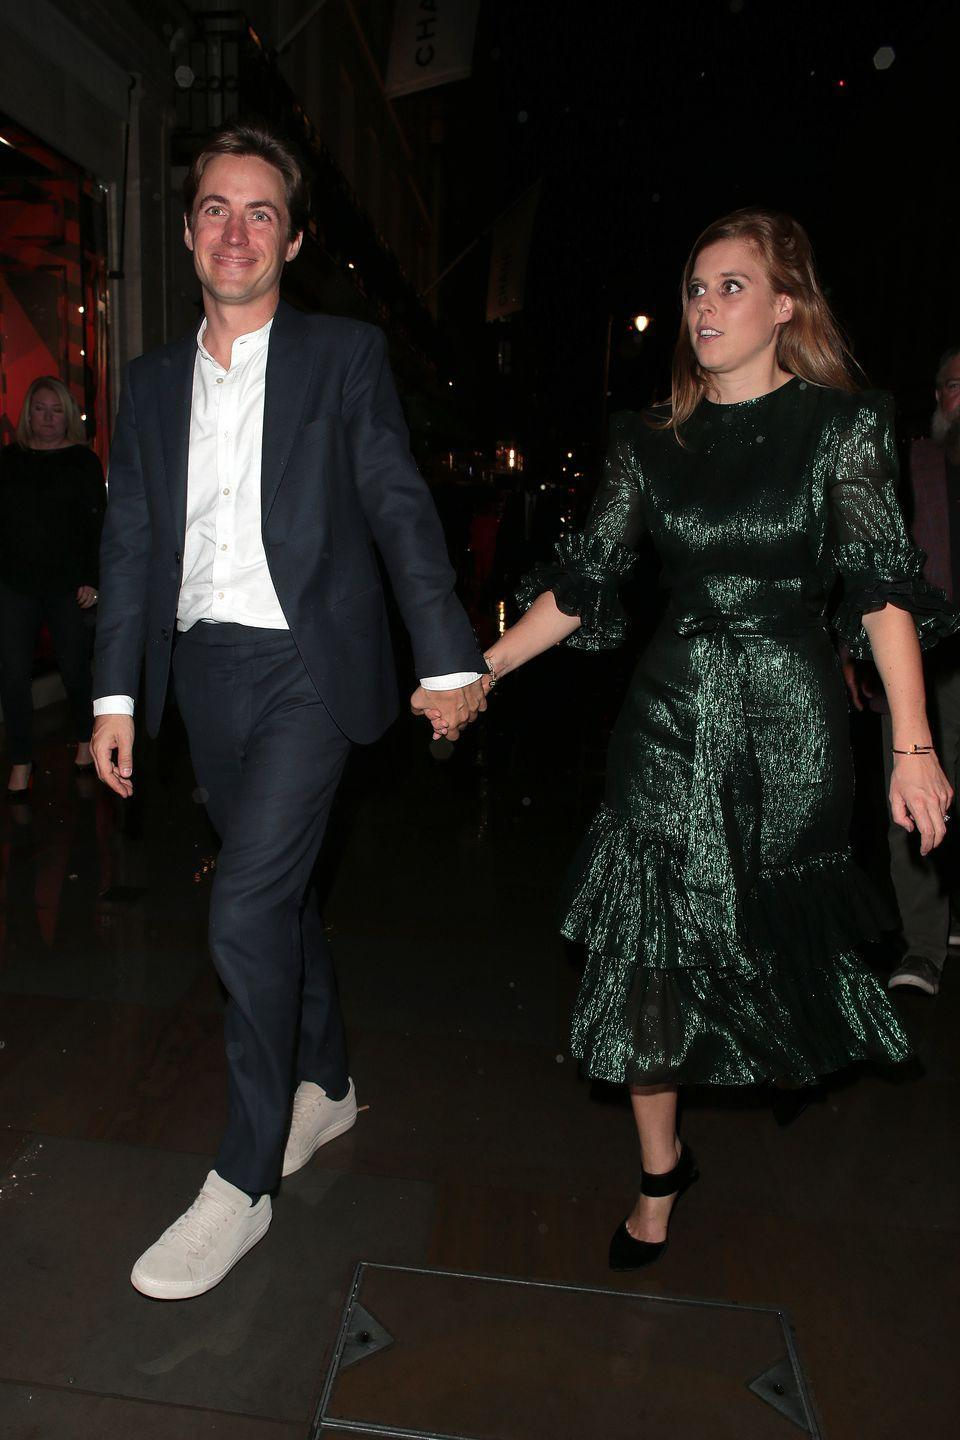 <p>Another shot of the couple shows Edo smiling after the book launch afterparty. </p>